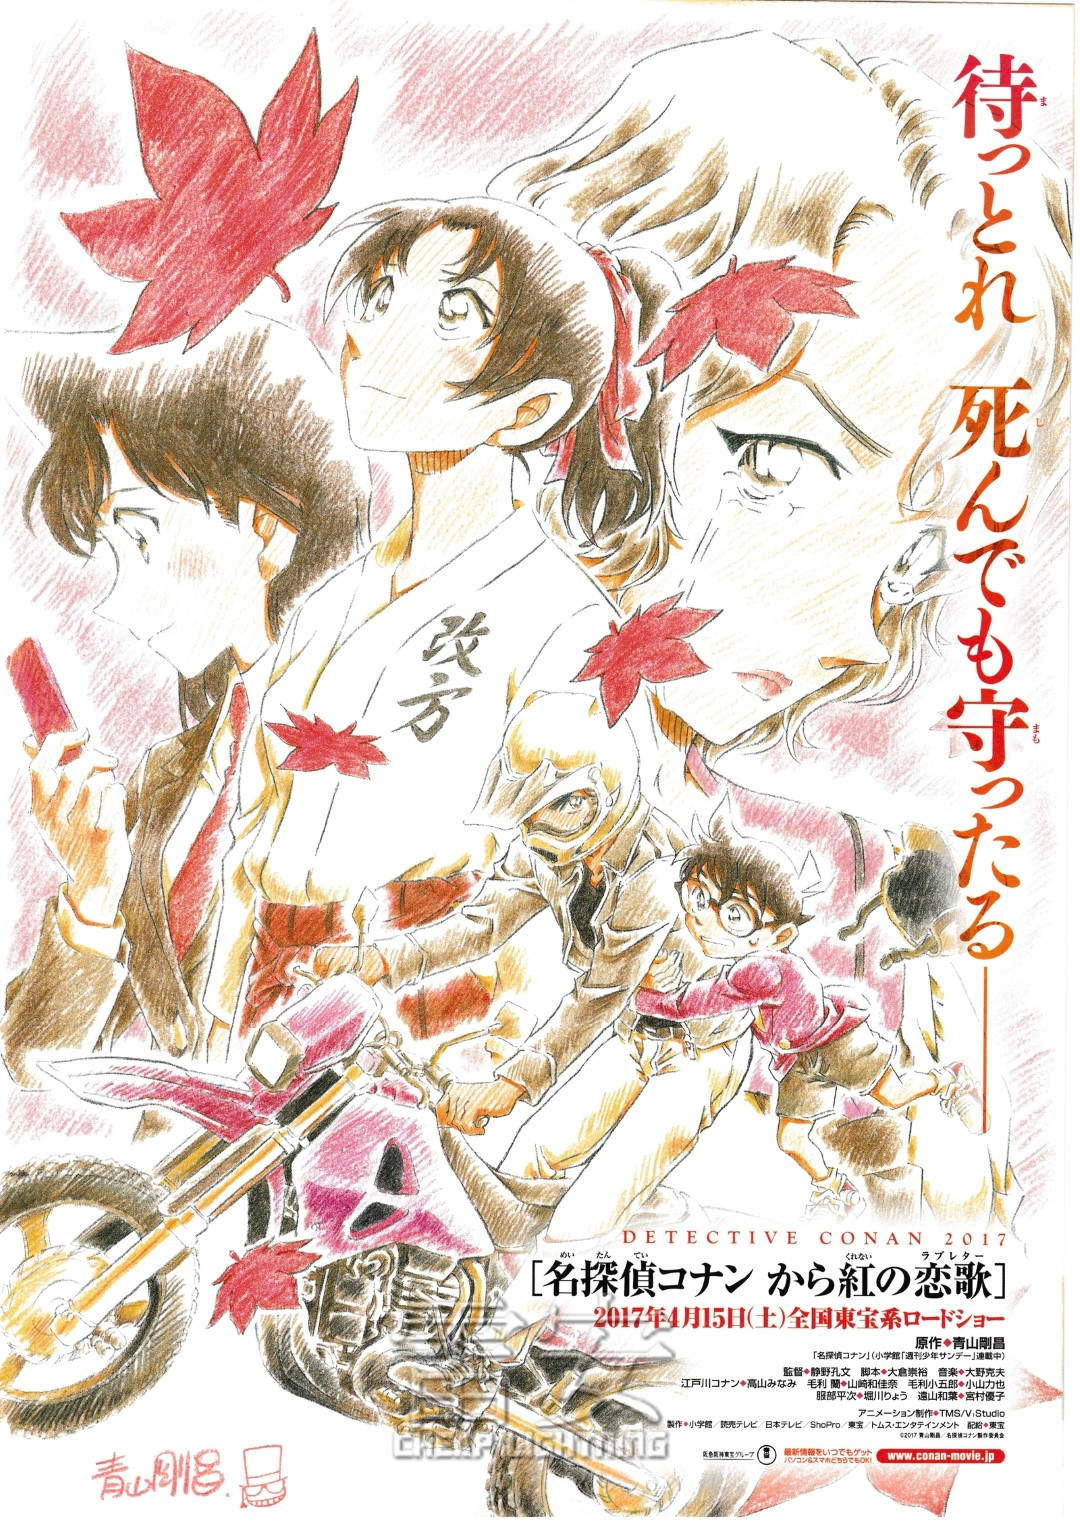 Detective Conan: Crimson Love Letter Japan Mini Movie Poster chirashi C883